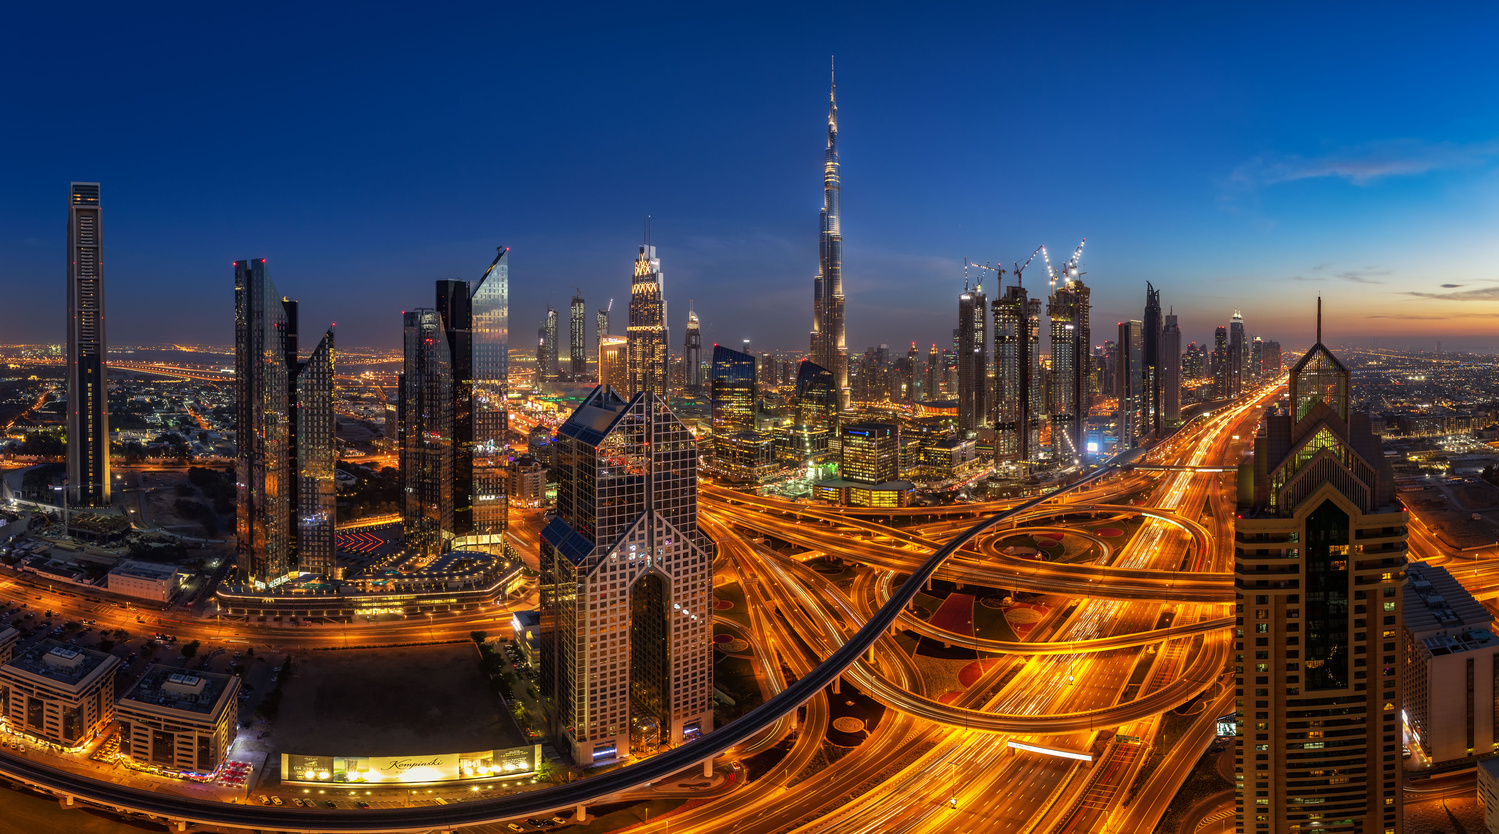 Downtown Dubai. by Lukas Petereit